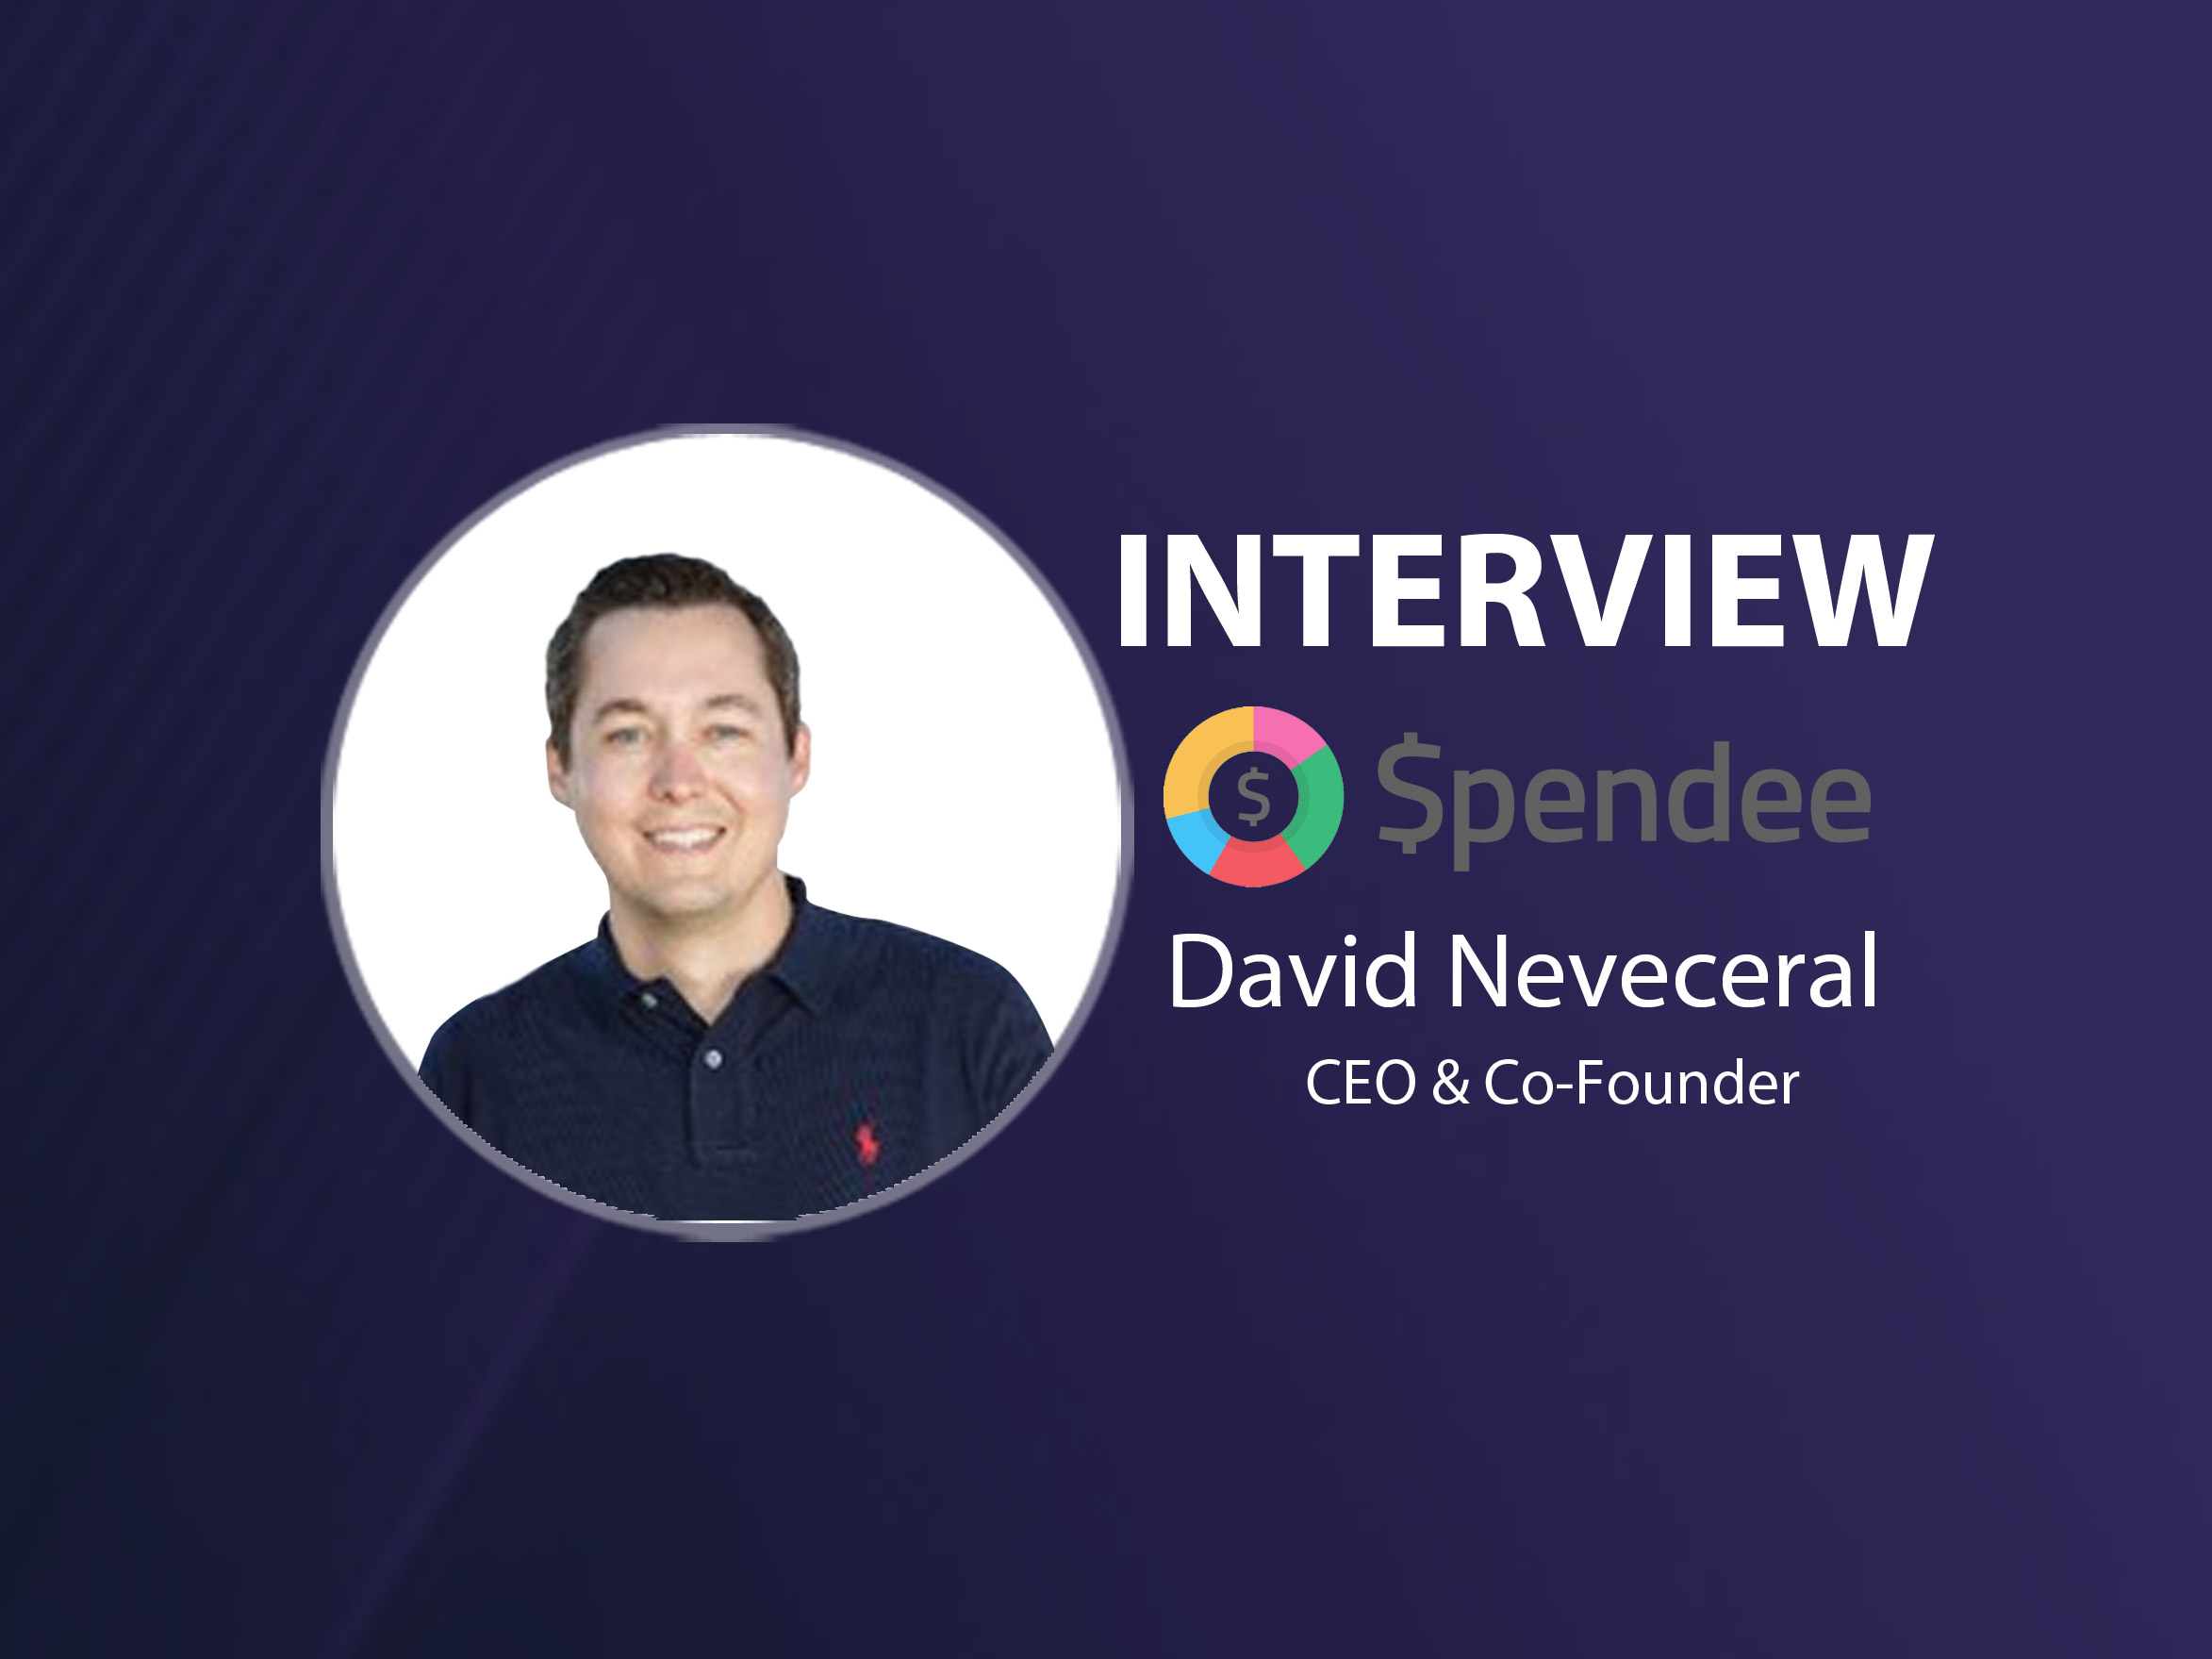 GlobalFintechSeries Interview with David Neveceral, CEO & Co-founder at Spendee